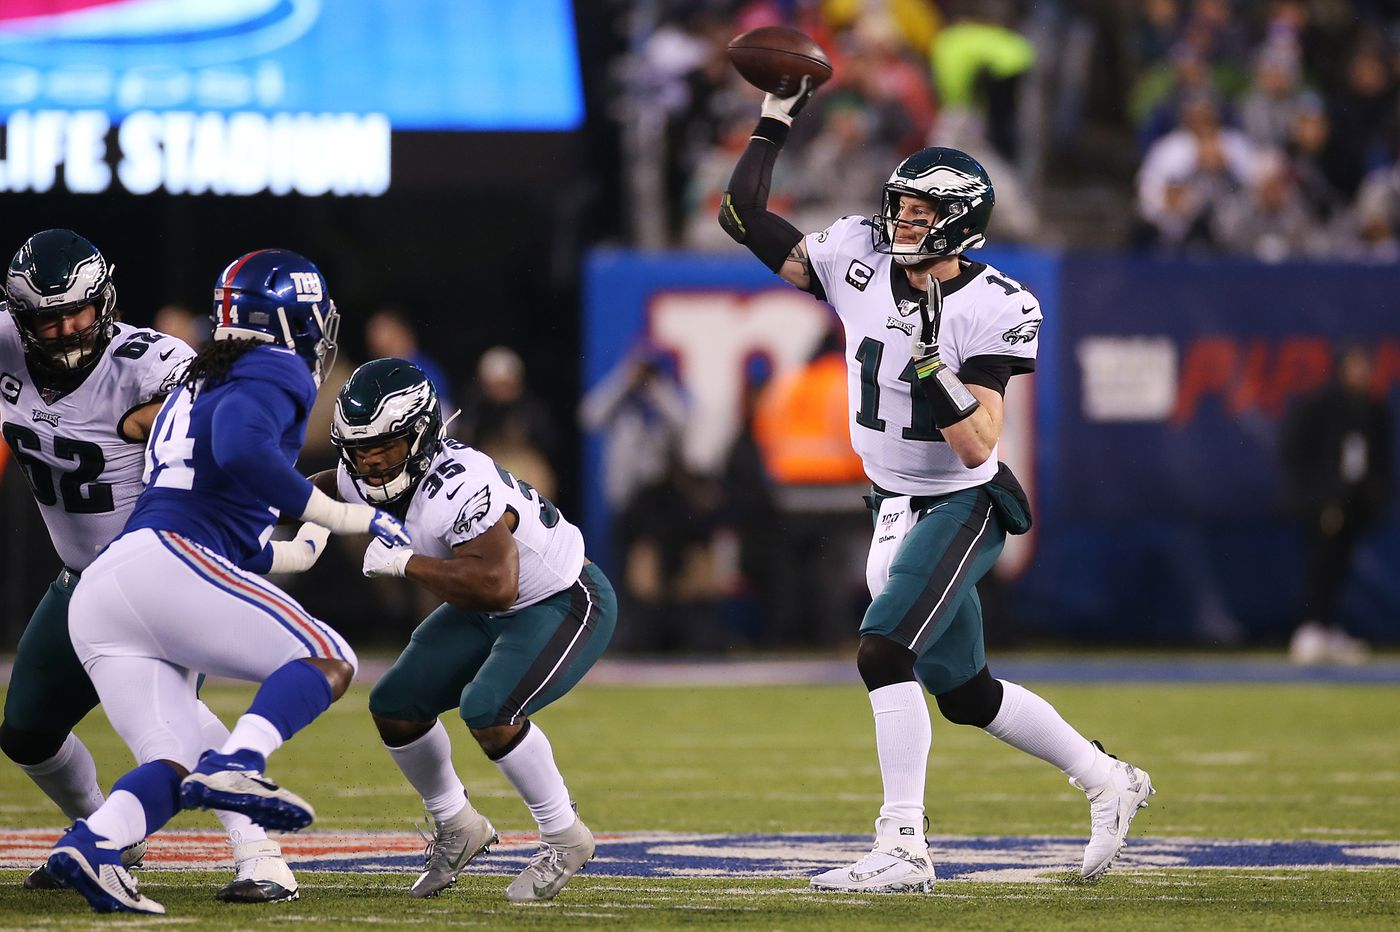 Can Carson Wentz be a difference-maker for Eagles in NFL playoffs? His teammates certainly think so. | David Murphy